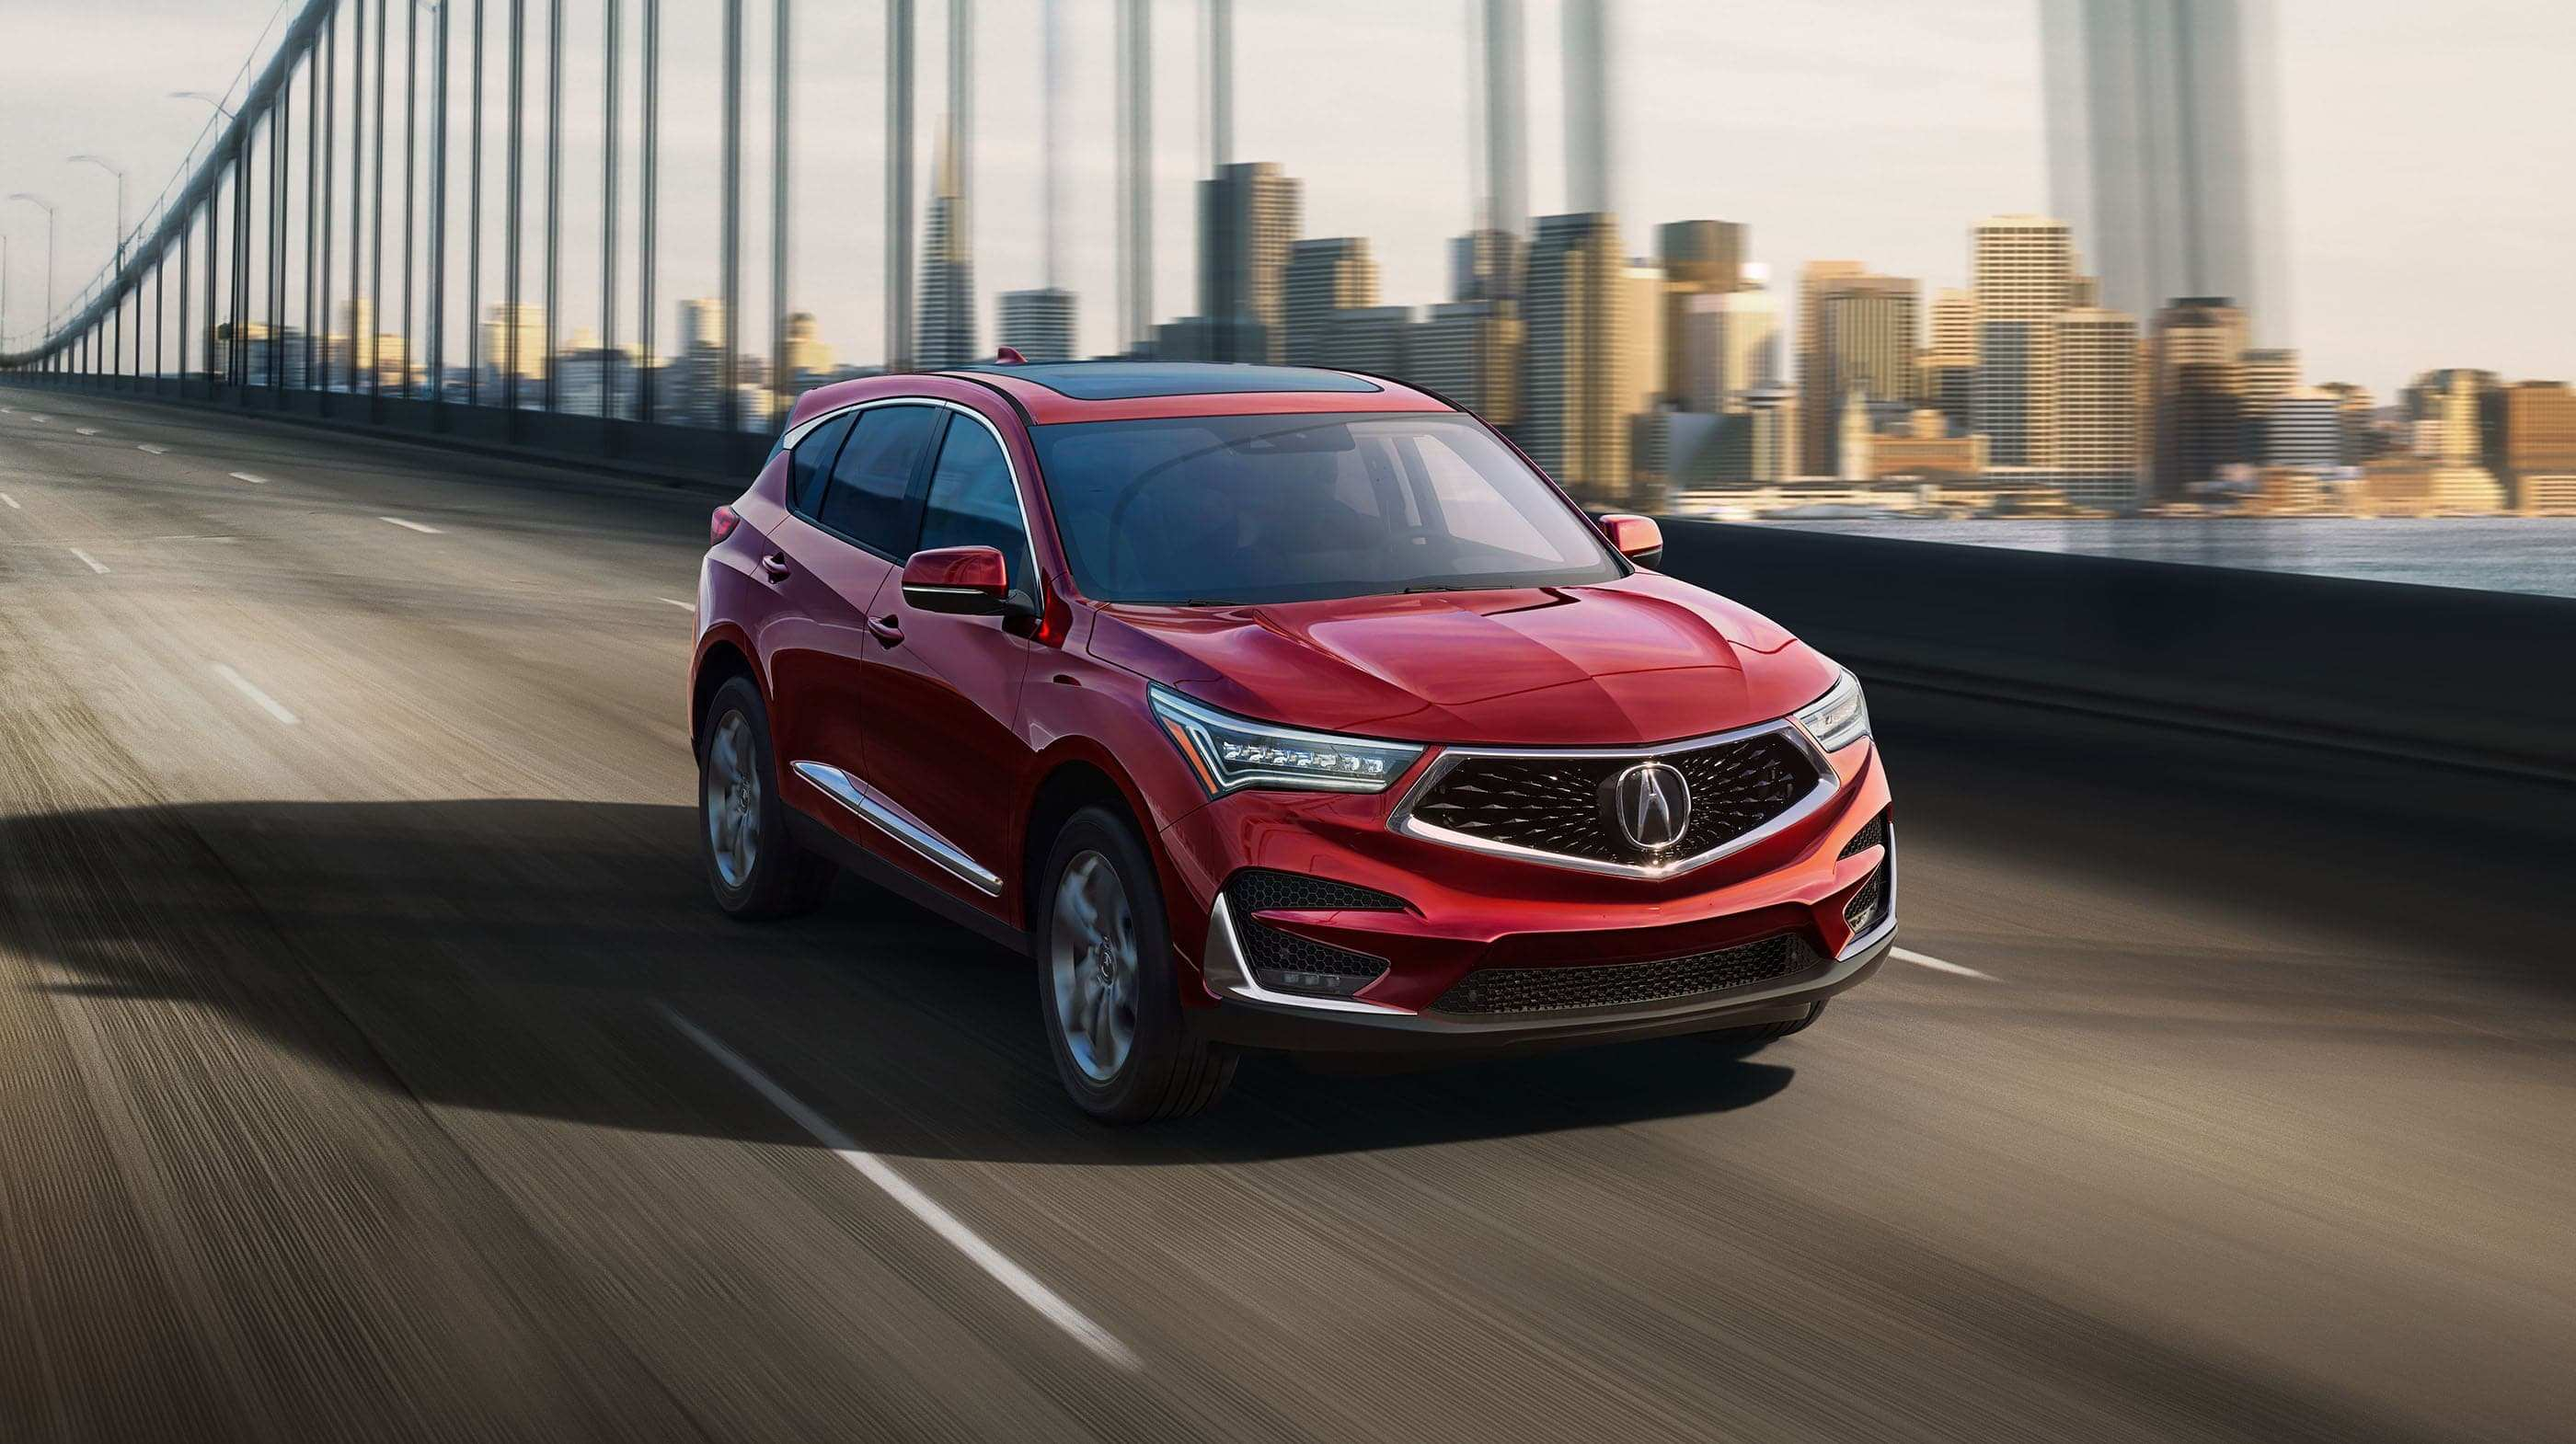 19 A When Is The 2020 Acura Rdx Coming Out New Review